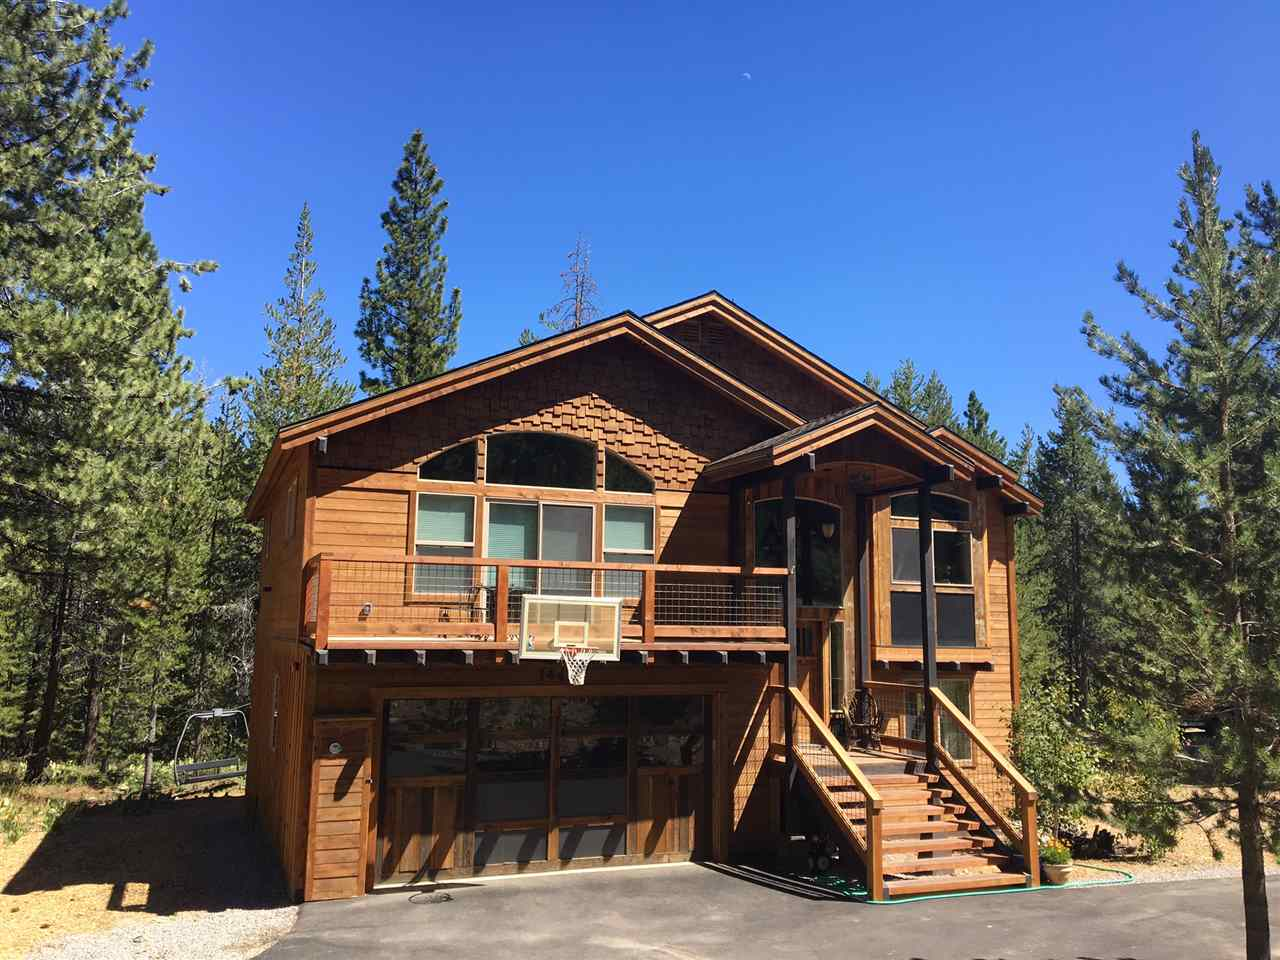 Single Family Home for Active at 14421 Alder Creek Road 14421 Alder Creek Road Truckee, California 96161 United States